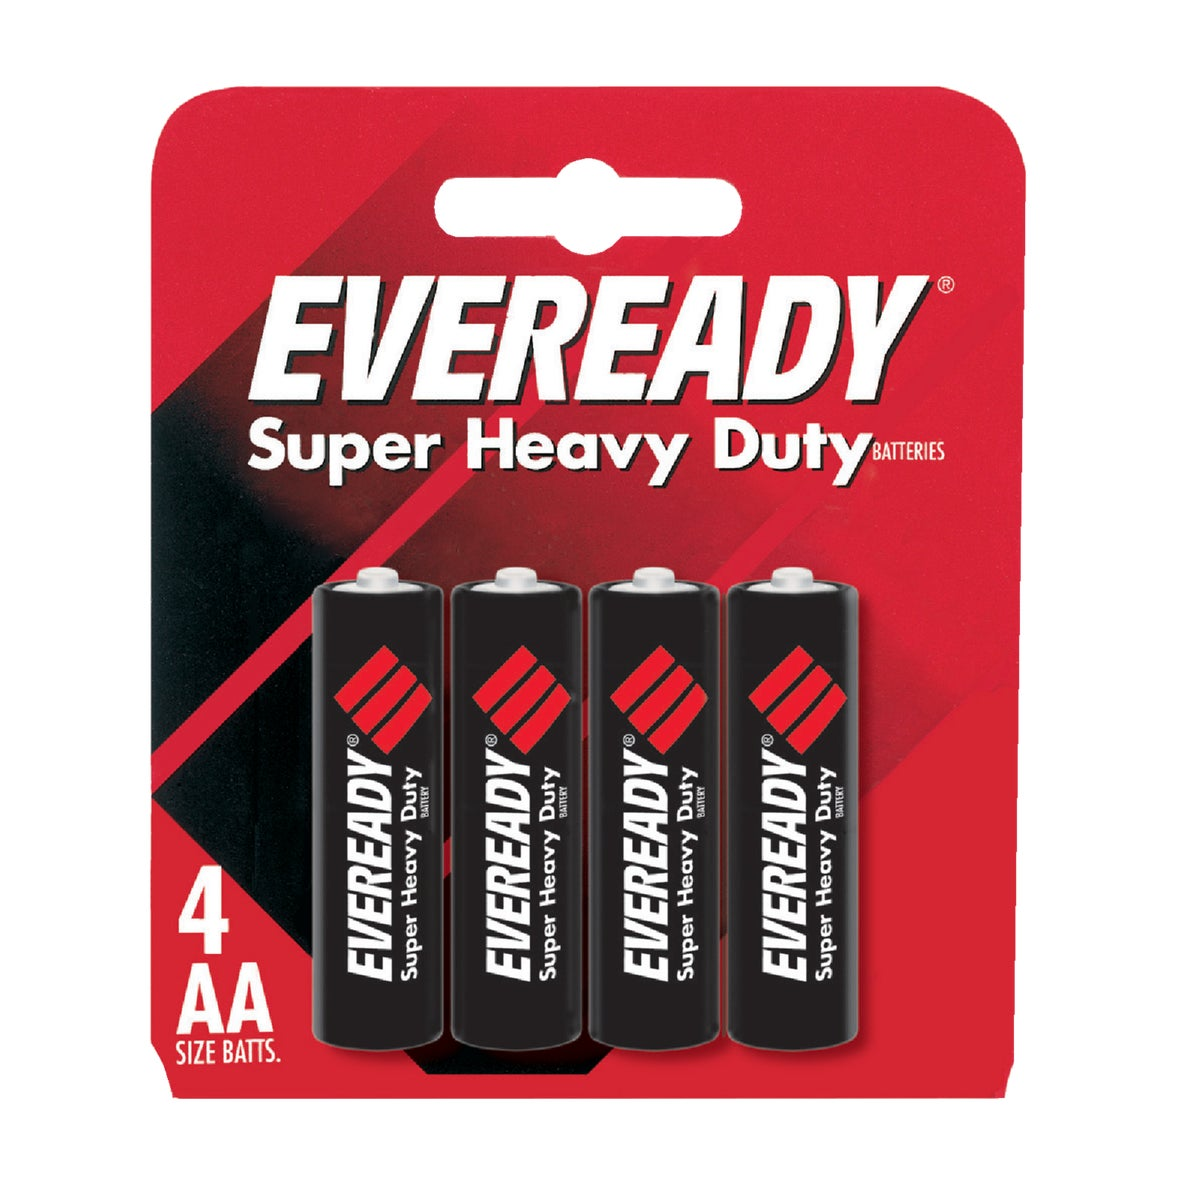 4CD AA H/DUTY BATTERY - 1215SW-4 by Energizer